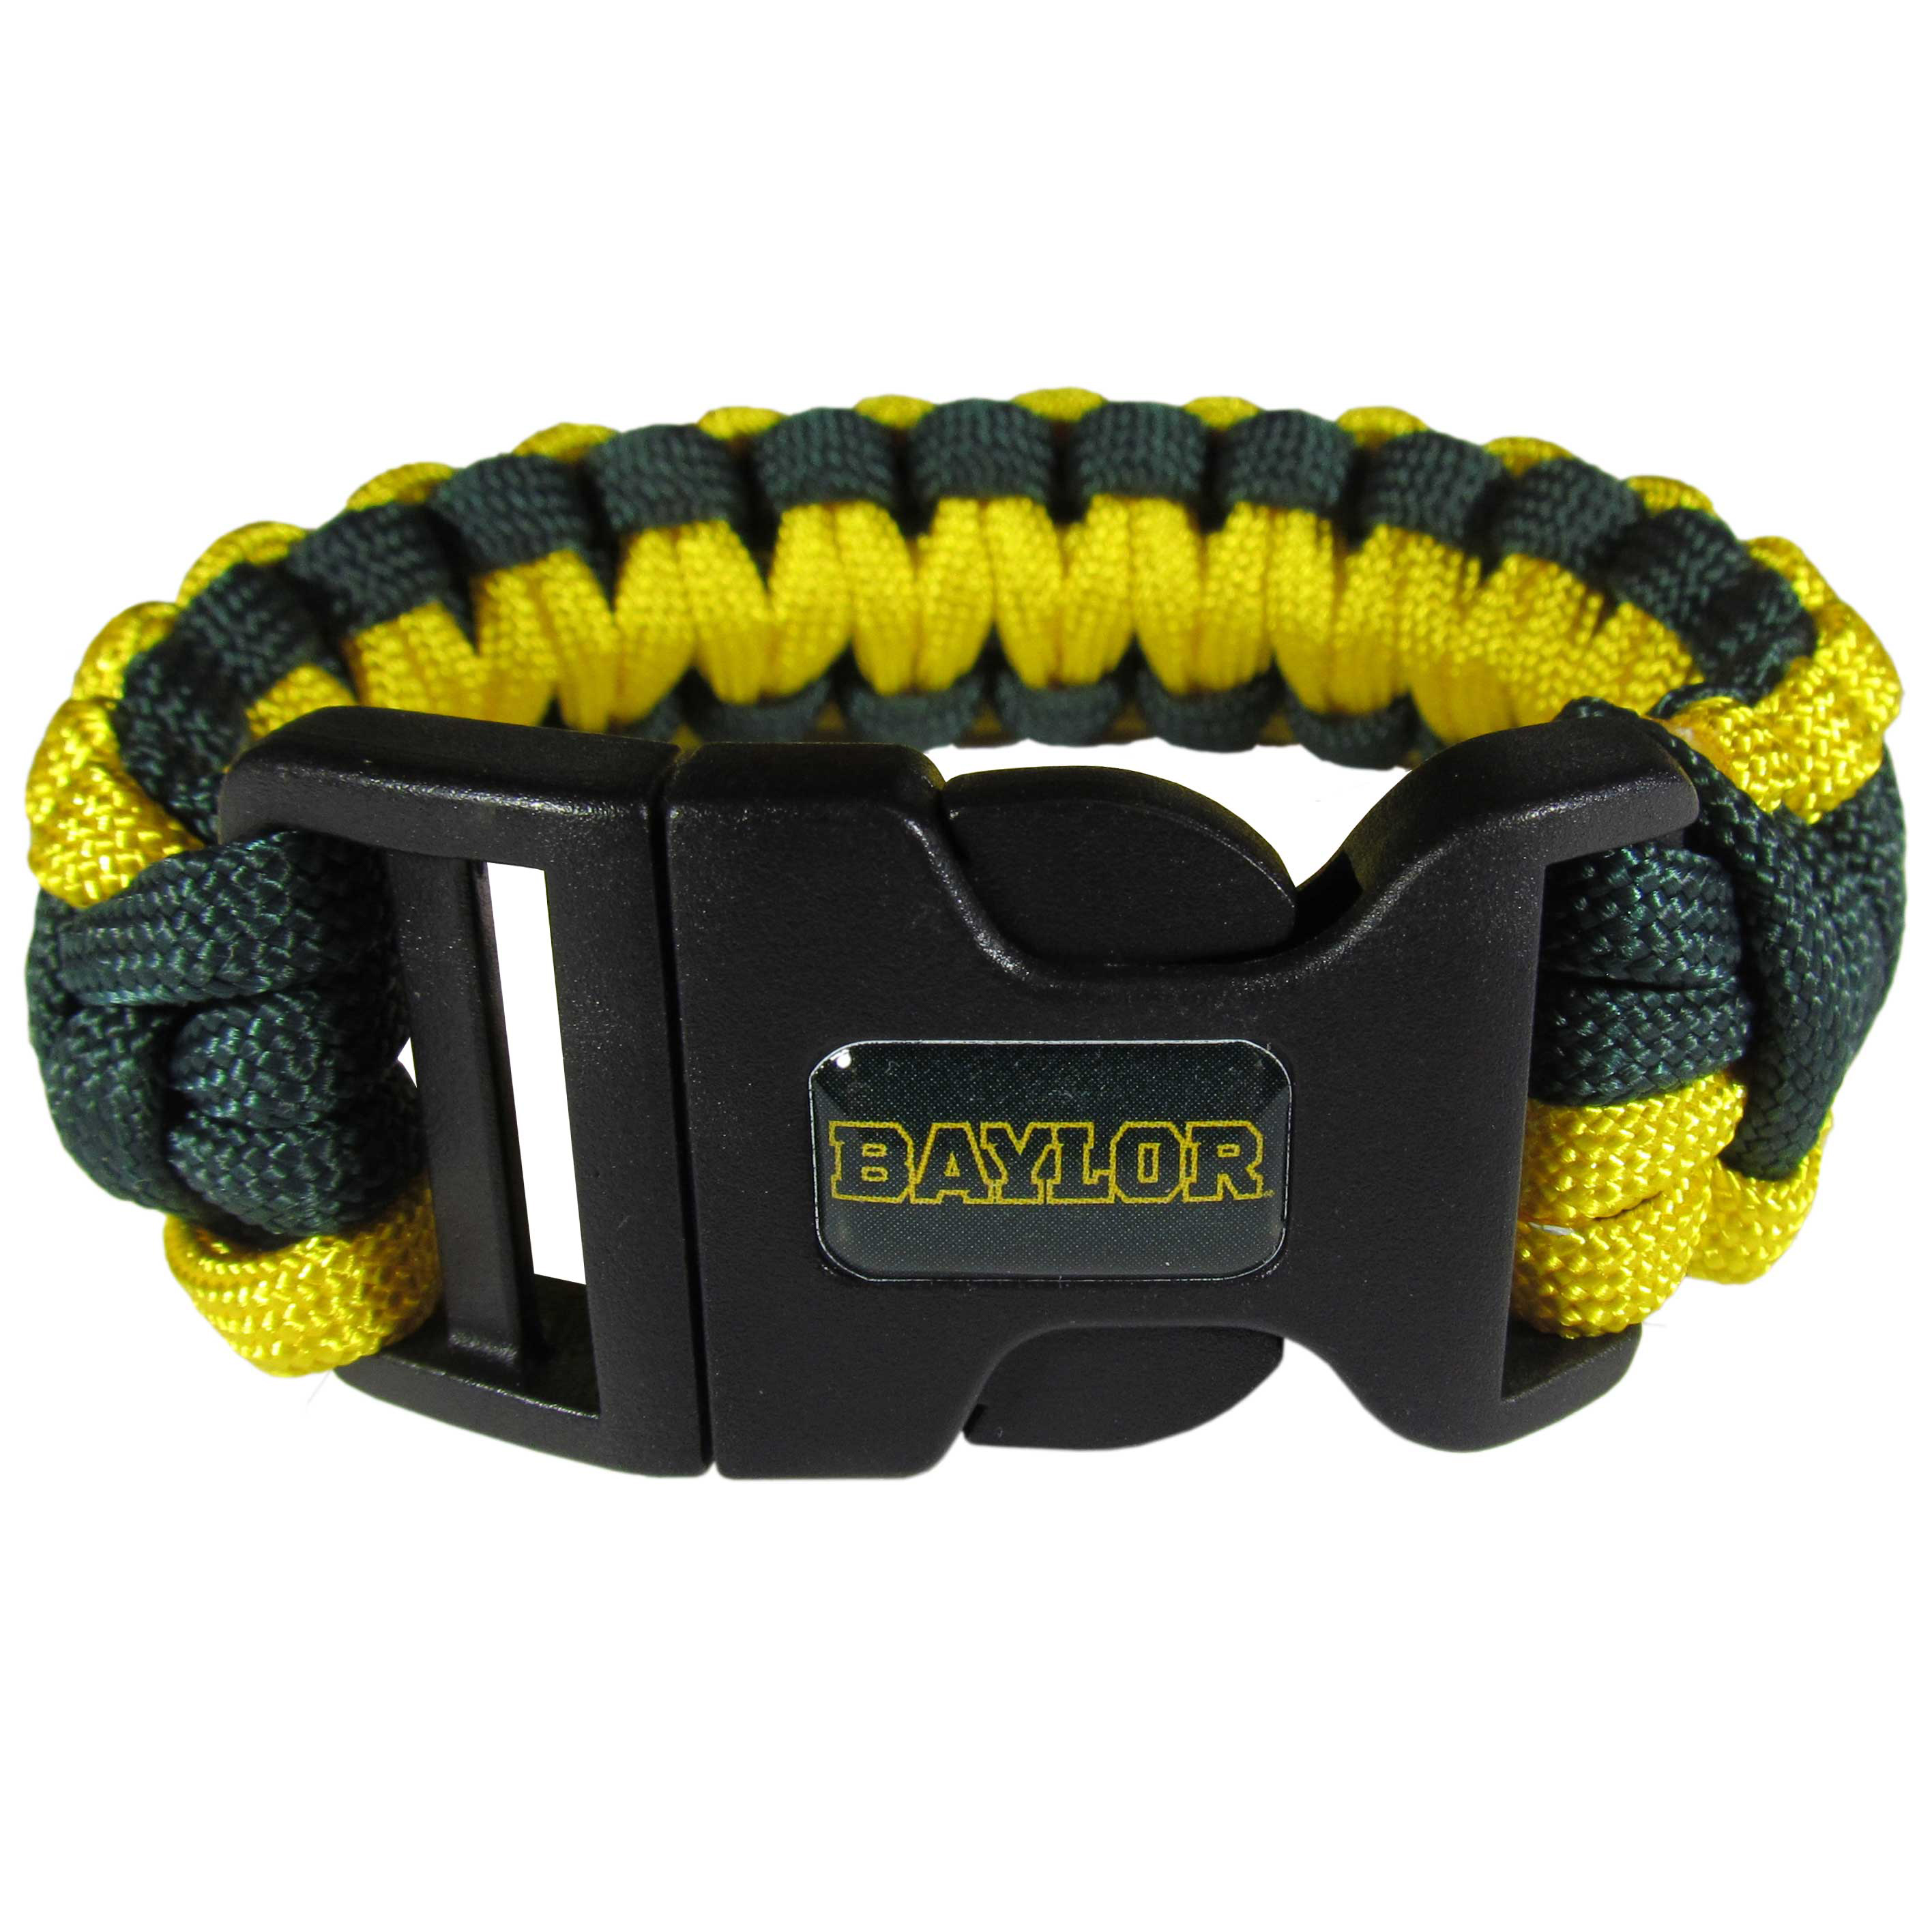 Baylor Bears Survivor Bracelet - Our functional and fashionable  survivor bracelets contain 2 individual 300lb test paracord rated cords that are each 5 feet long. The team colored cords can be pulled apart to be used in any number of emergencies and look great while worn. The bracelet features a team emblem on the clasp.